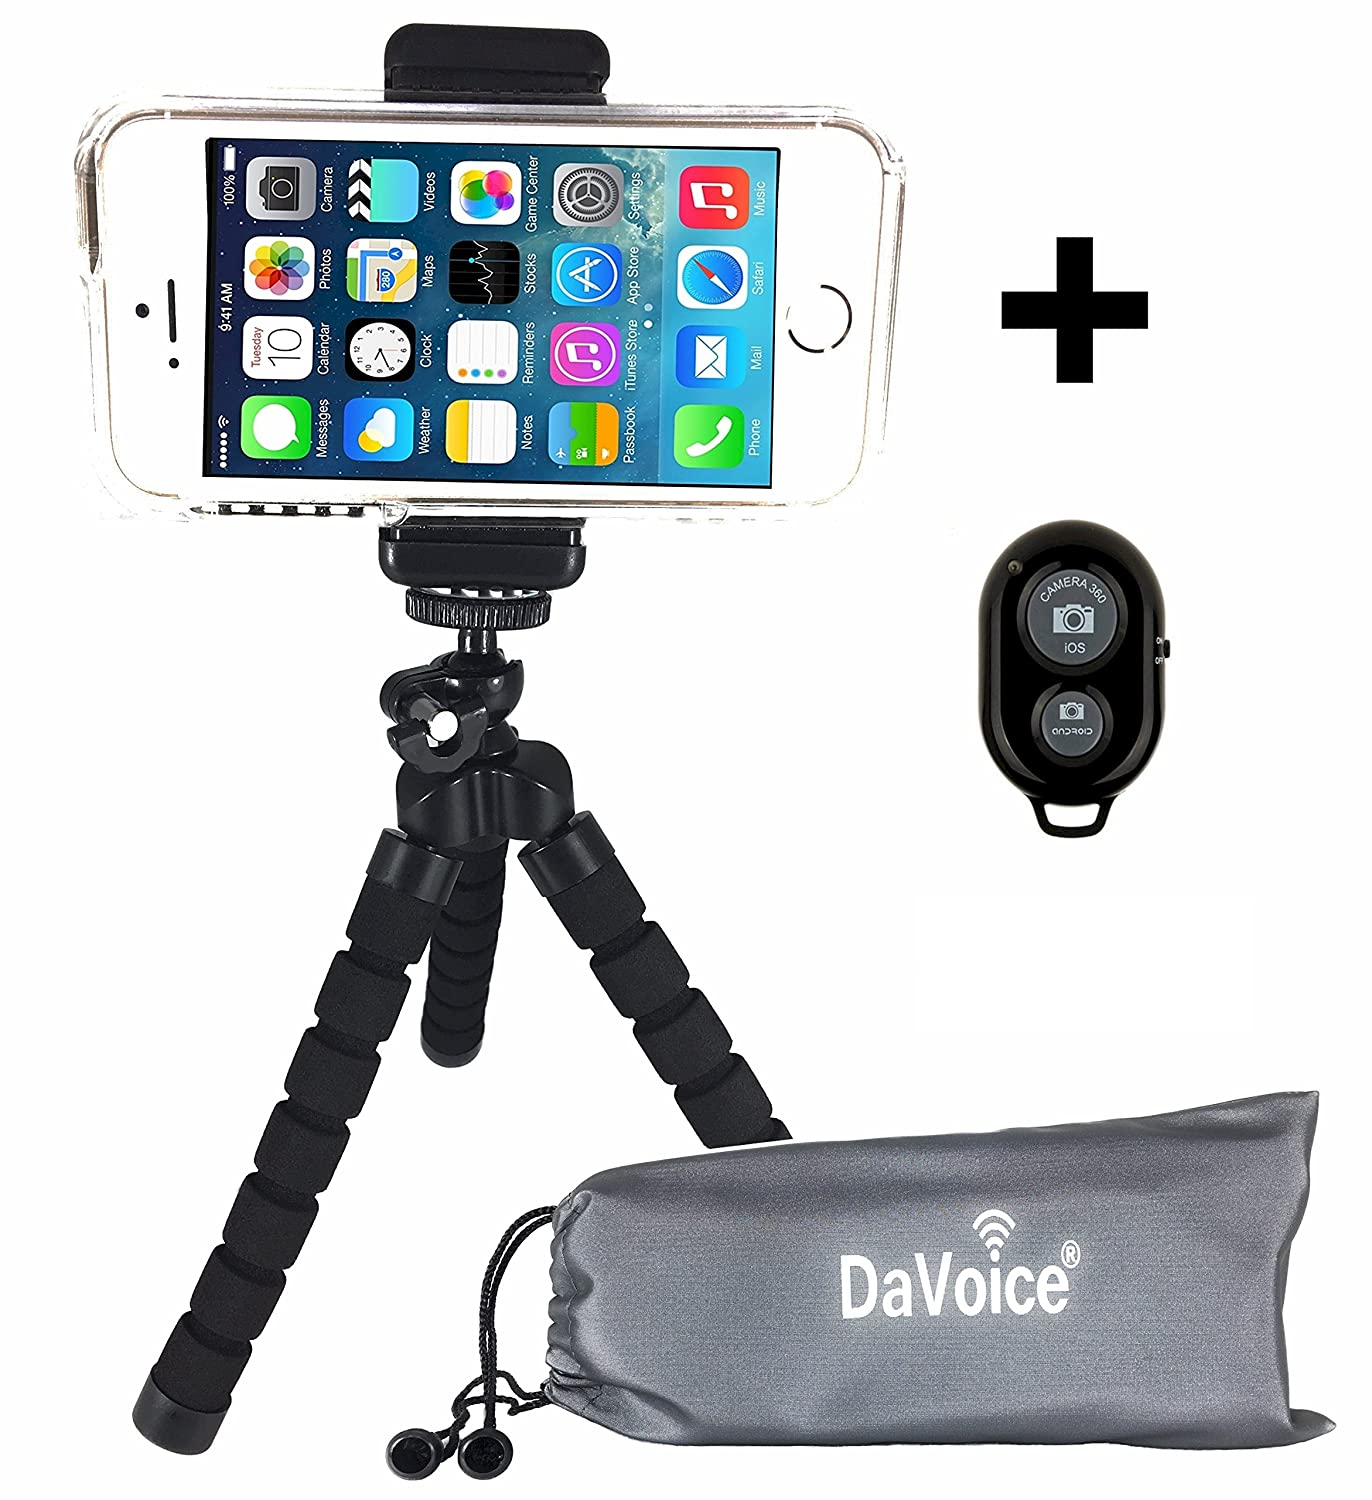 Flexible Cell Phone Tripod for iPhone X 8 7 6s 6 SE 5s 5c 4s 4 Samsung Galaxy S8 S7 S6 S5 S4 - Smartphone Adapter Mount - Bluetooth Remote - DaVoice Carry Bag Octopus Flex Bendable Mini Pocket (Black) hot sale